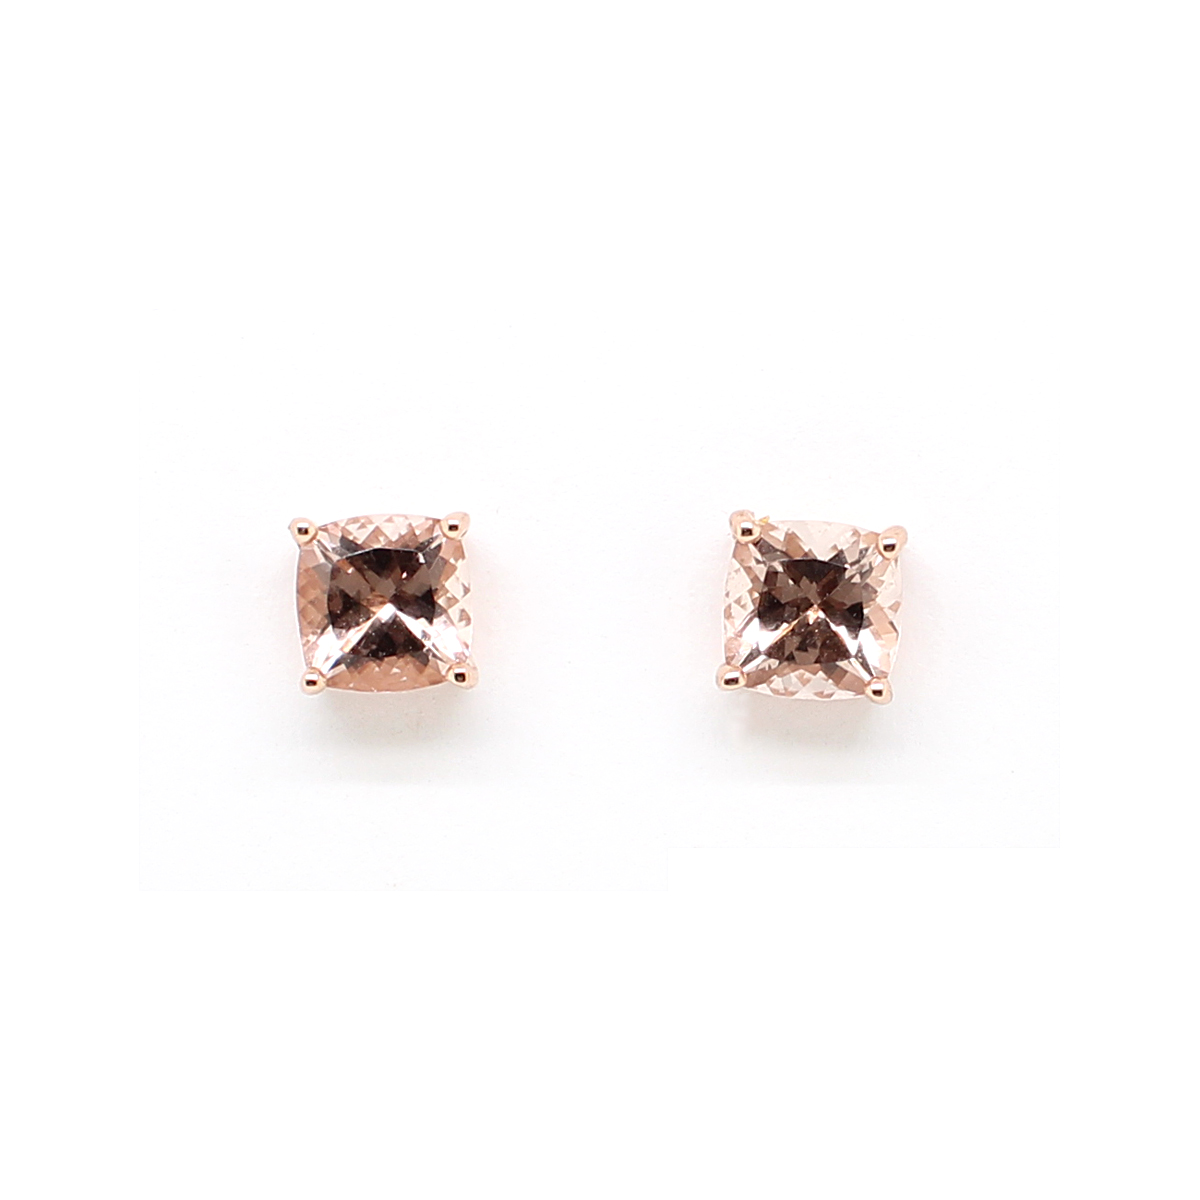 14 Karat Rose Gold Morganite Stud Earrings